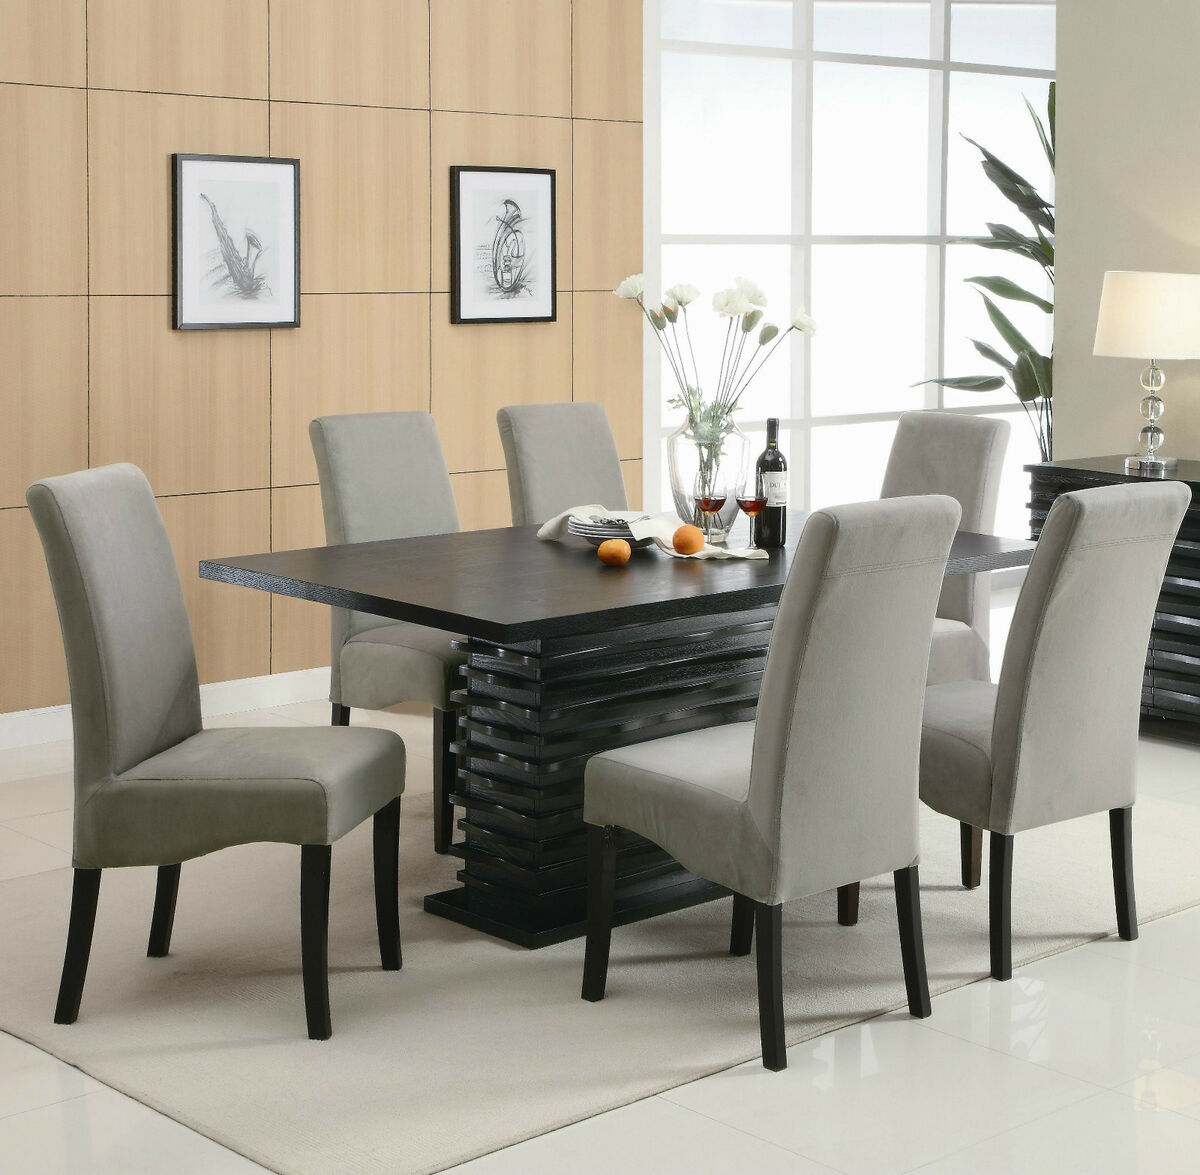 Dining table furniture contemporary dining table chairs for Modern dining table and chairs set